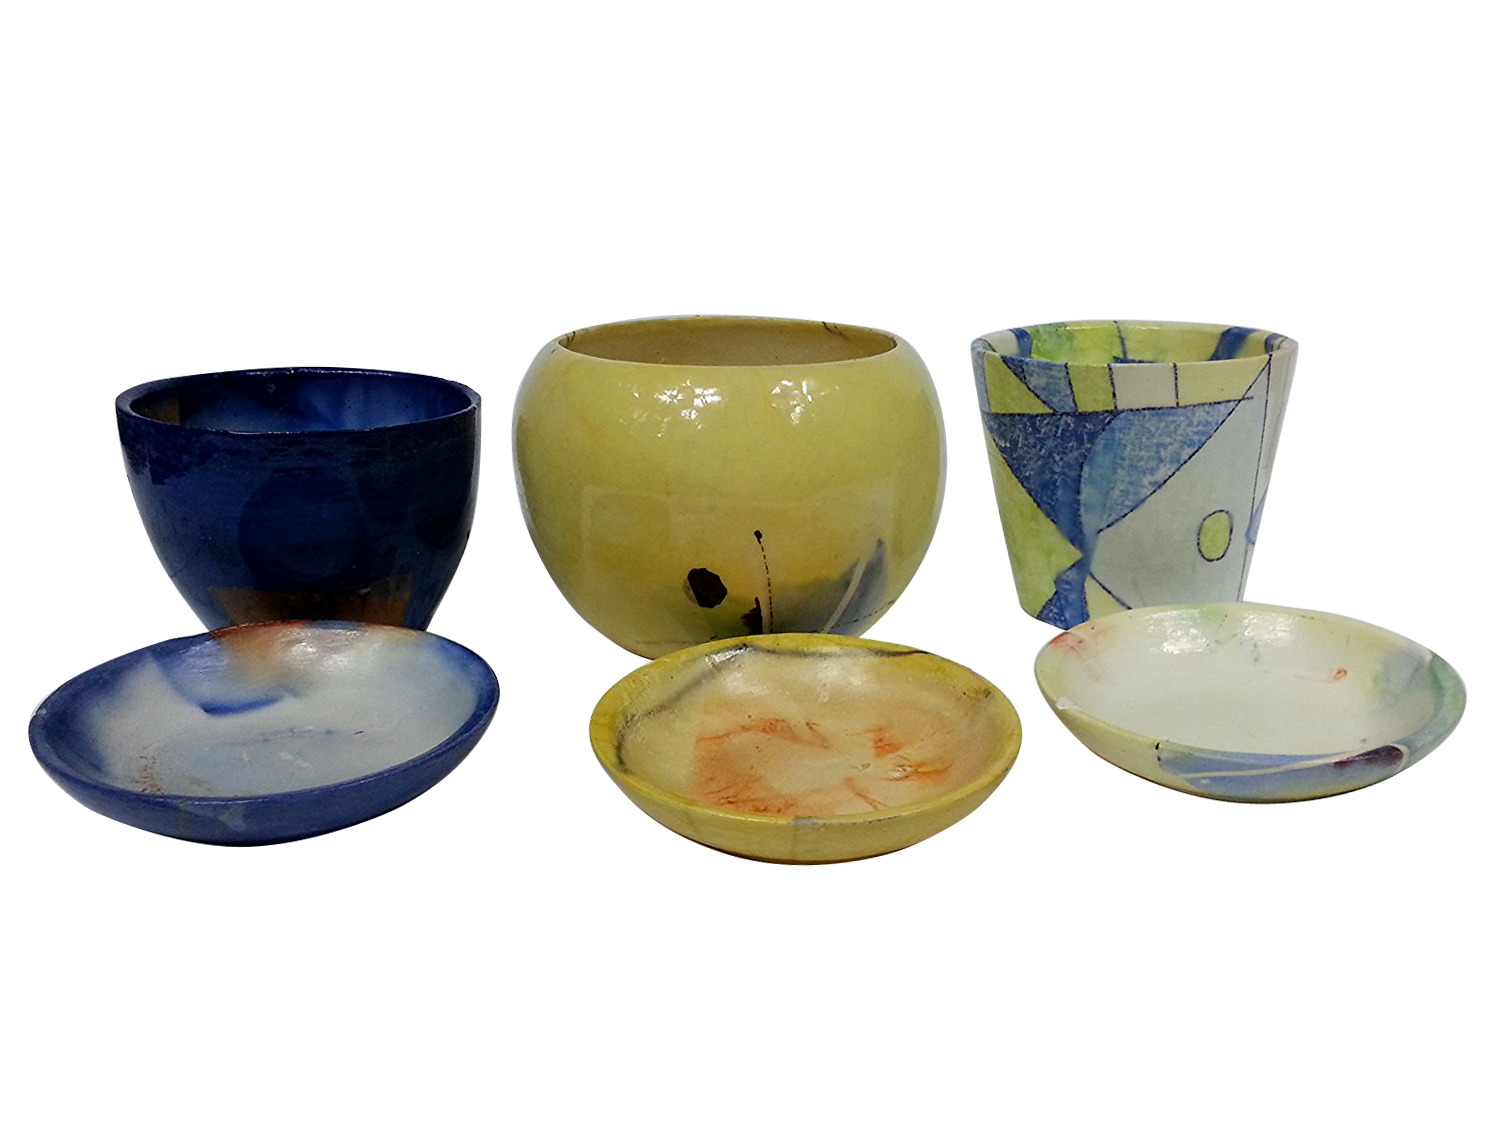 Handmade 3 Pcs Ceramic Flower Pots And Hand Painted By Skilled